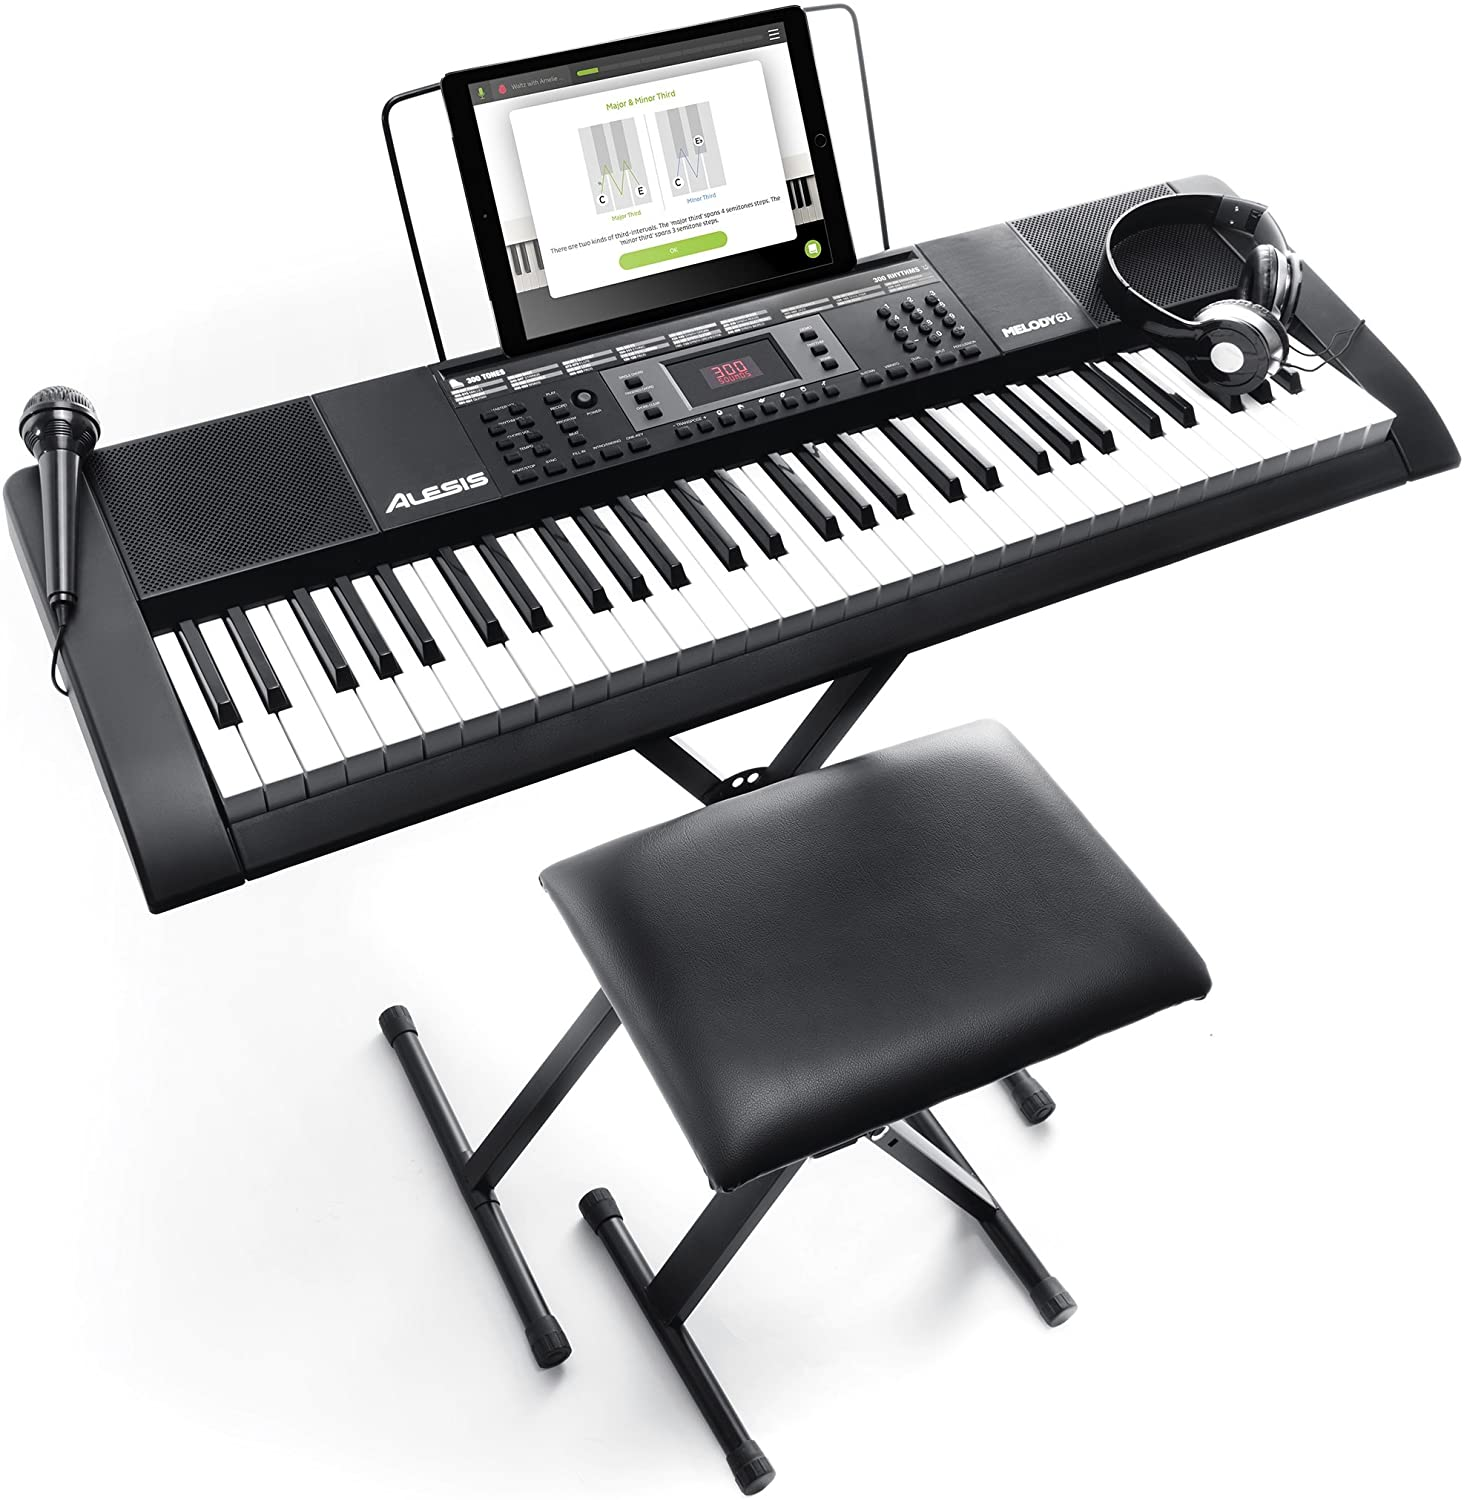 Review of Alesis Melody 61 MKII | 61 Key Portable Keyboard Piano with Built In Speakers, Headphones, Microphone